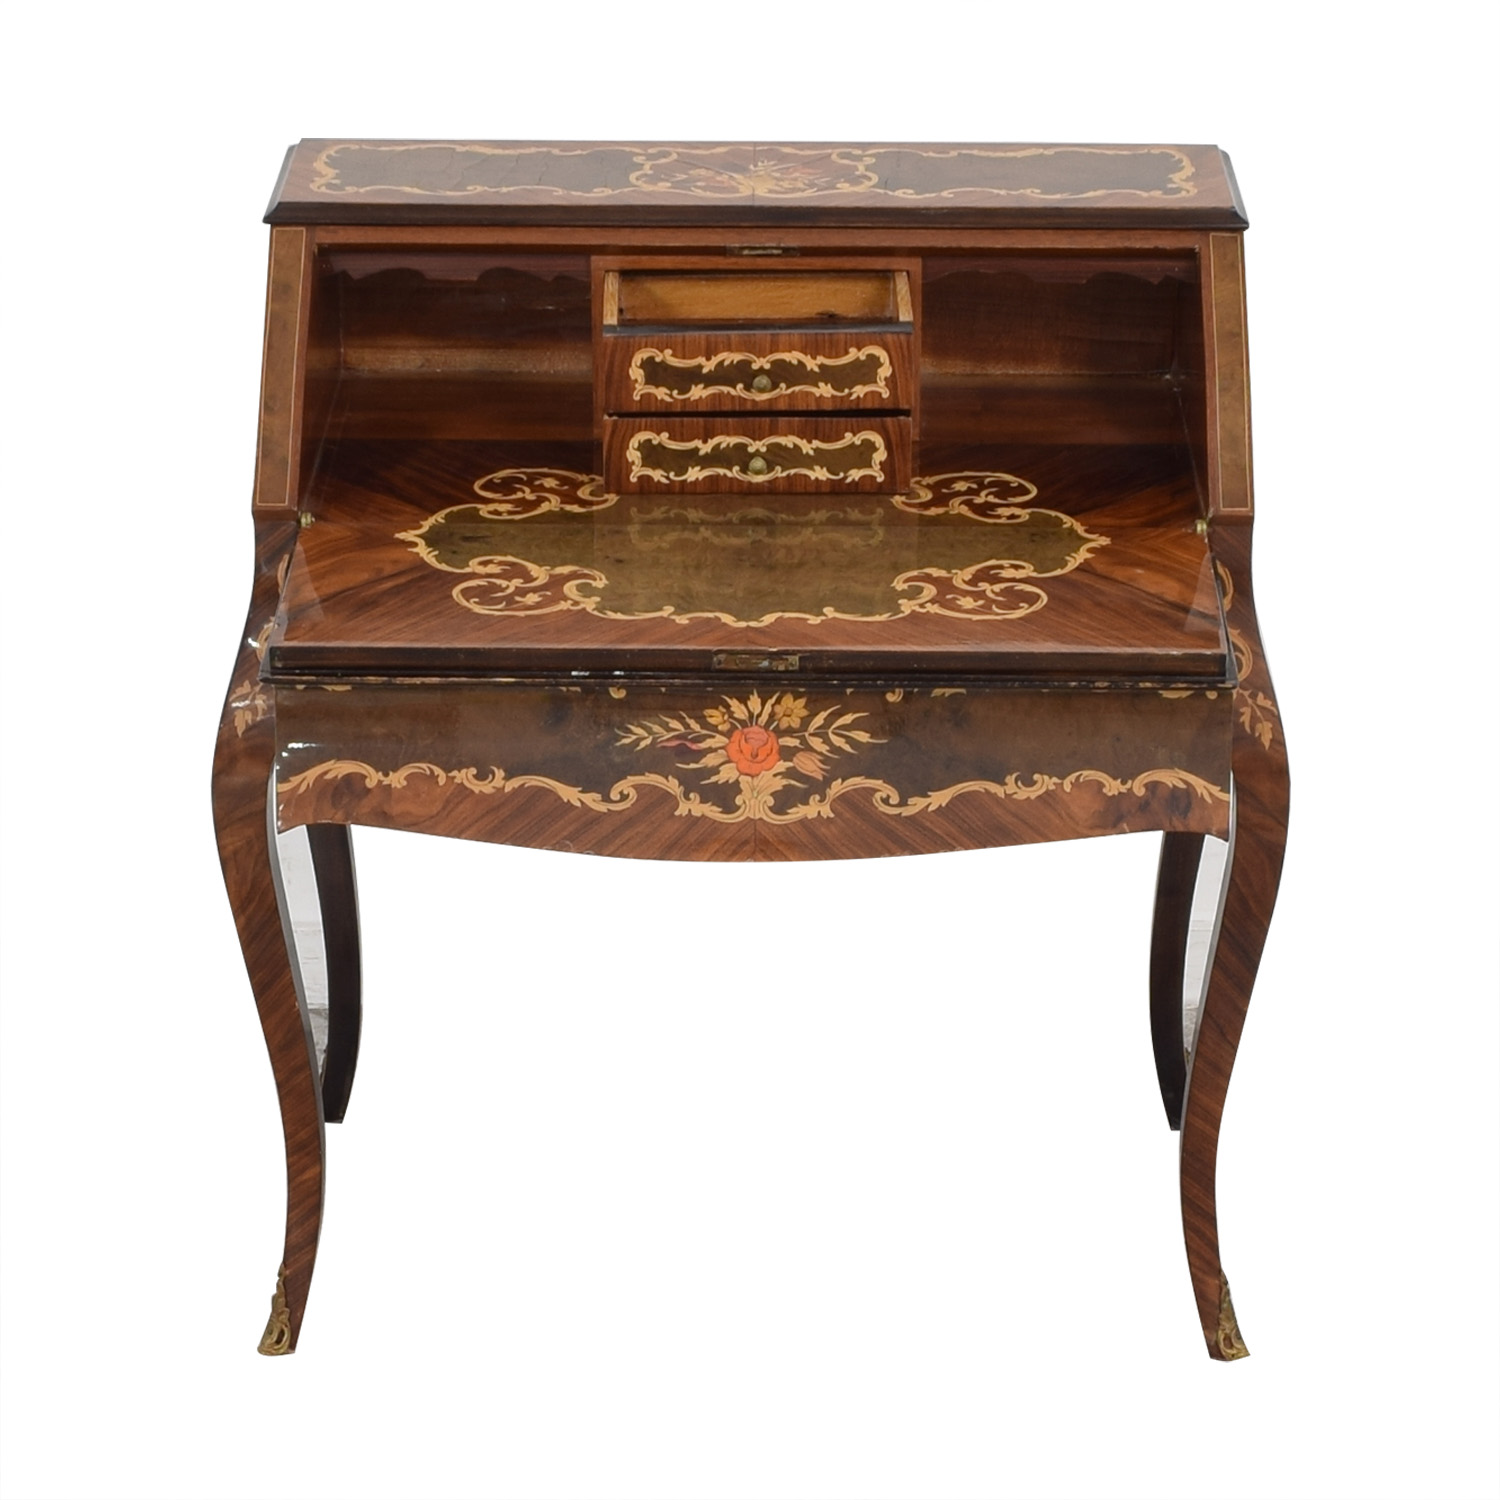 Vintage Italian Decorative Desk ma